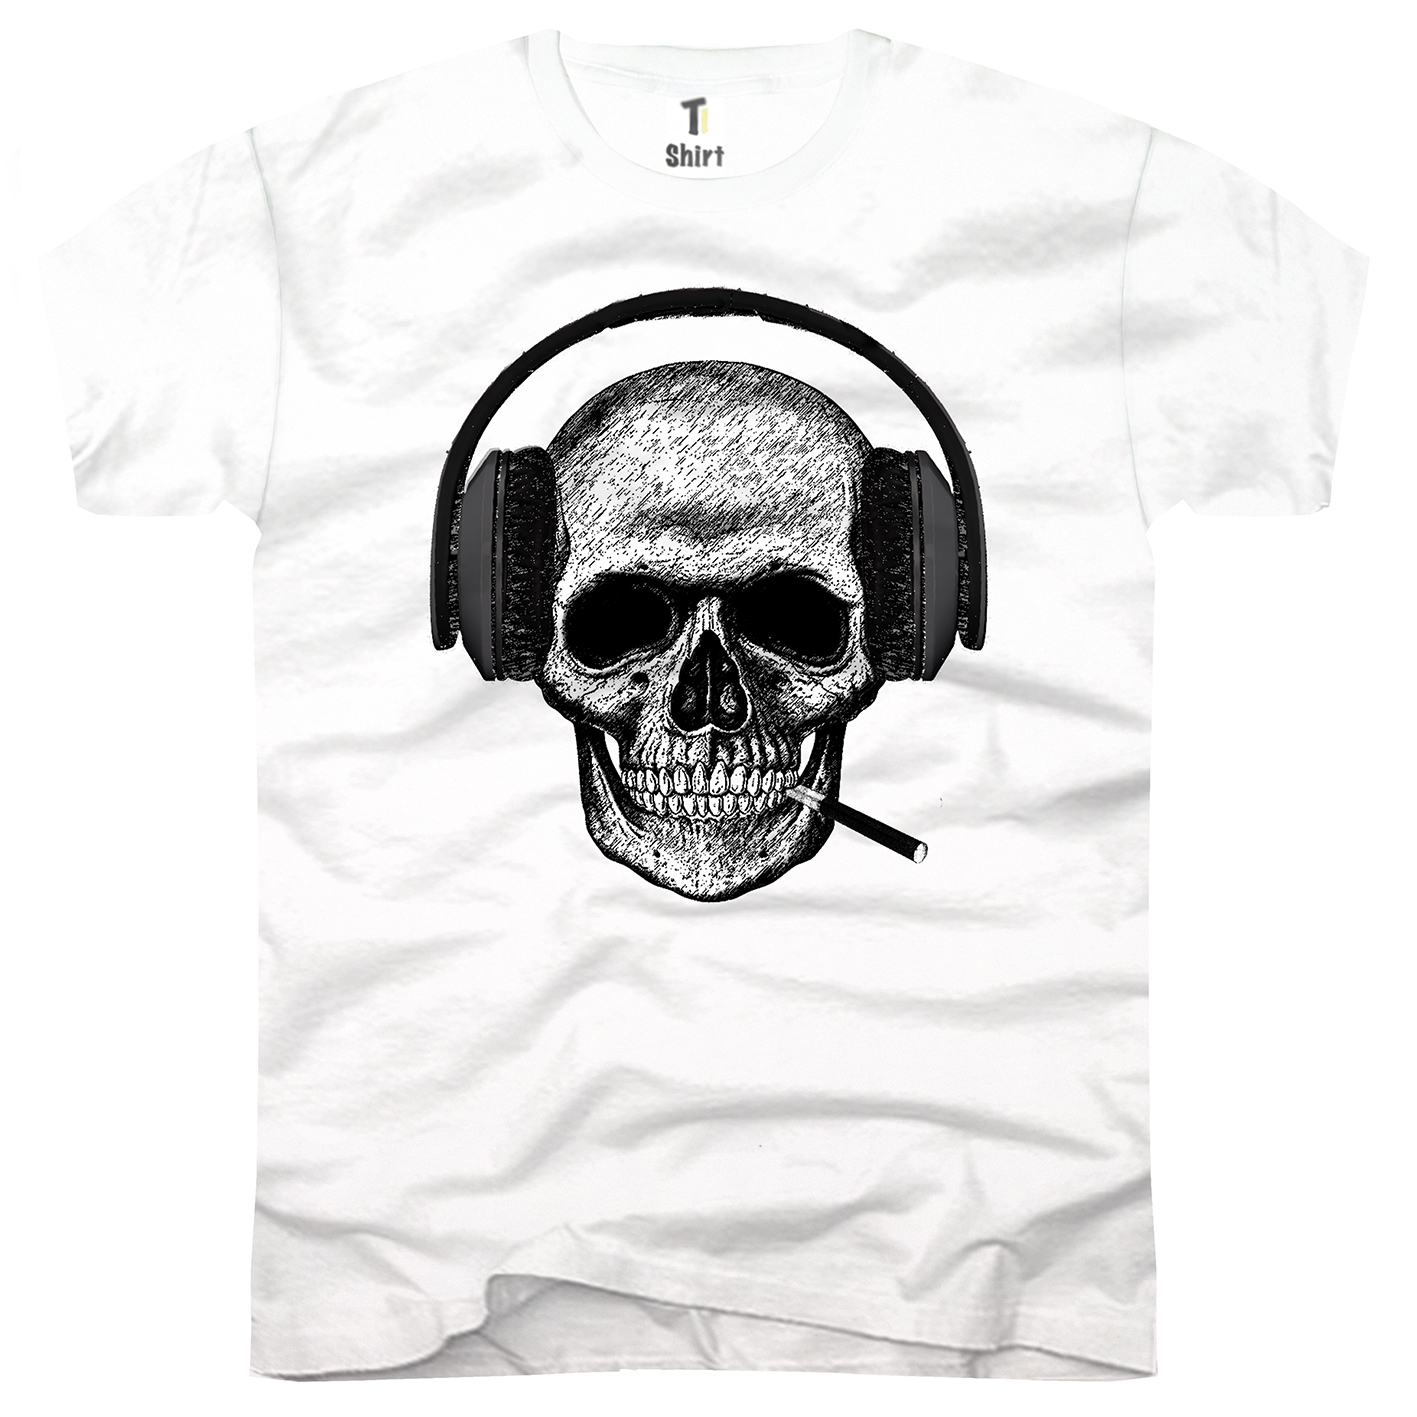 headset totenkopf t shirt f r herren coole motiv auf ti. Black Bedroom Furniture Sets. Home Design Ideas